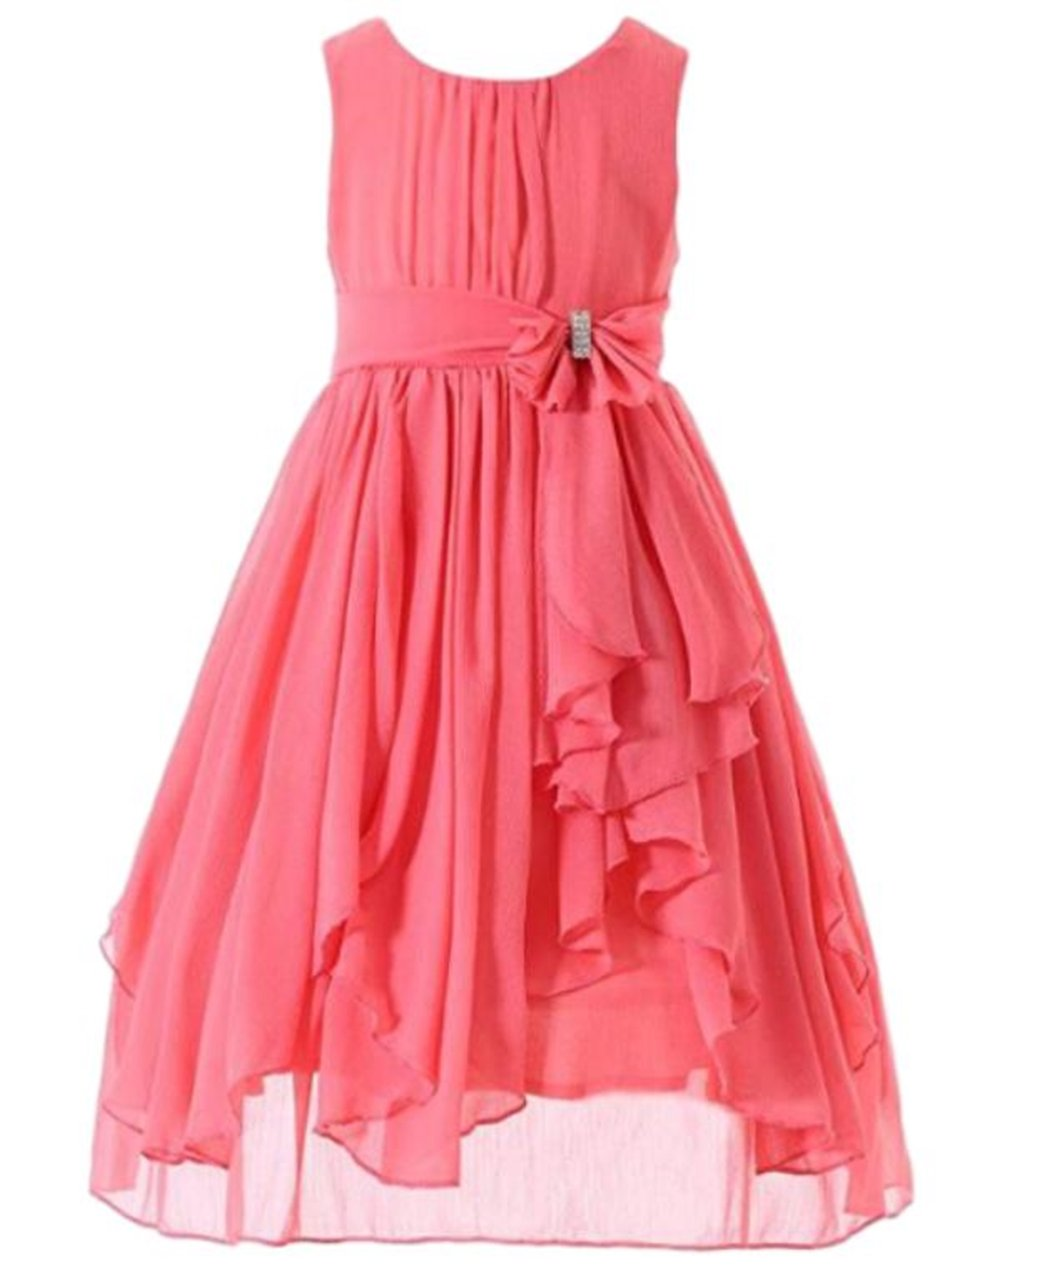 Glasshie Girl's Kids Bow Ruffled Chiffon Round Neck Sleeveless Knee Length Dress(8, Coral)